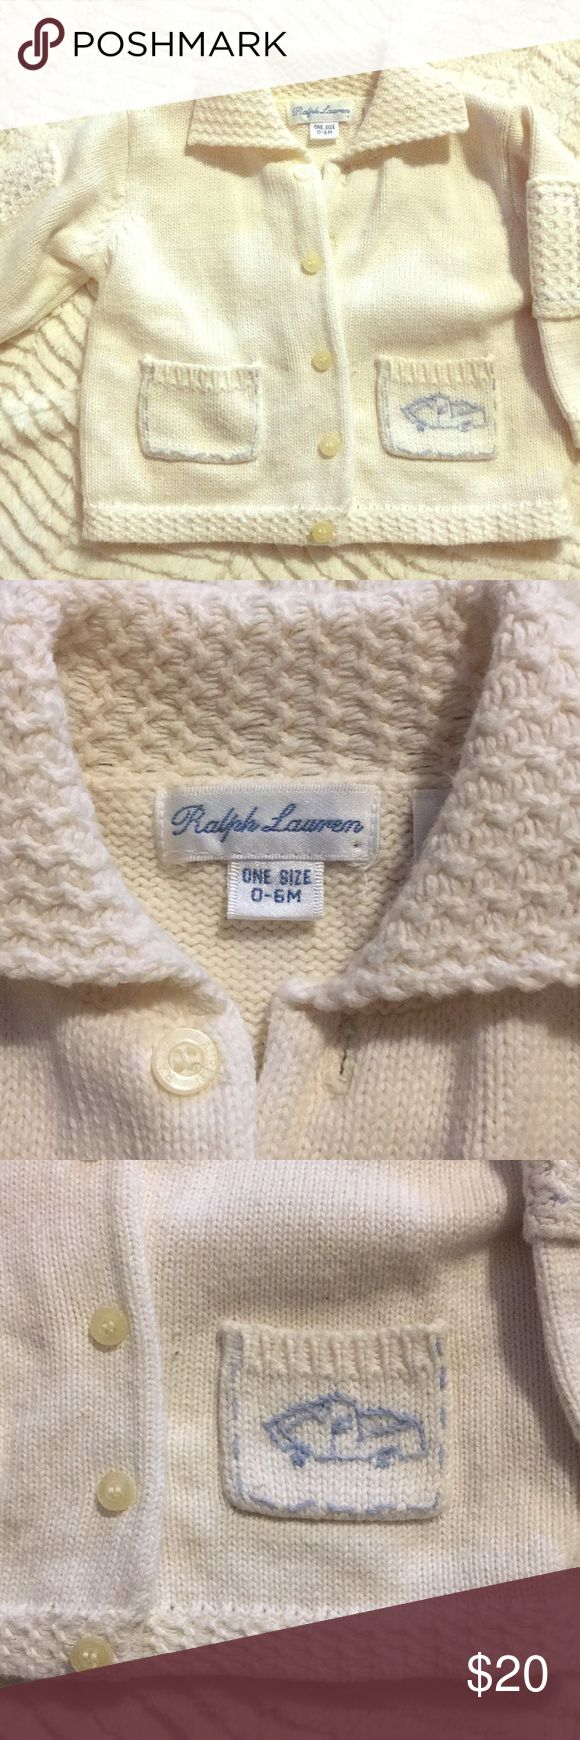 Ralph Lauren cotton baby boy sweater cardigan Ralph Lauren 0-6 month baby boy sweater cardigan. In perfect condition. Cream colored with blue stitching on pockets and elbow patches. Blue truck embroidered on front left pocket. No rips stains or tears. 100% Cotton. Button up front. Smoke free pet free home. Bundle and save! Ralph Lauren Shirts & Tops Sweaters